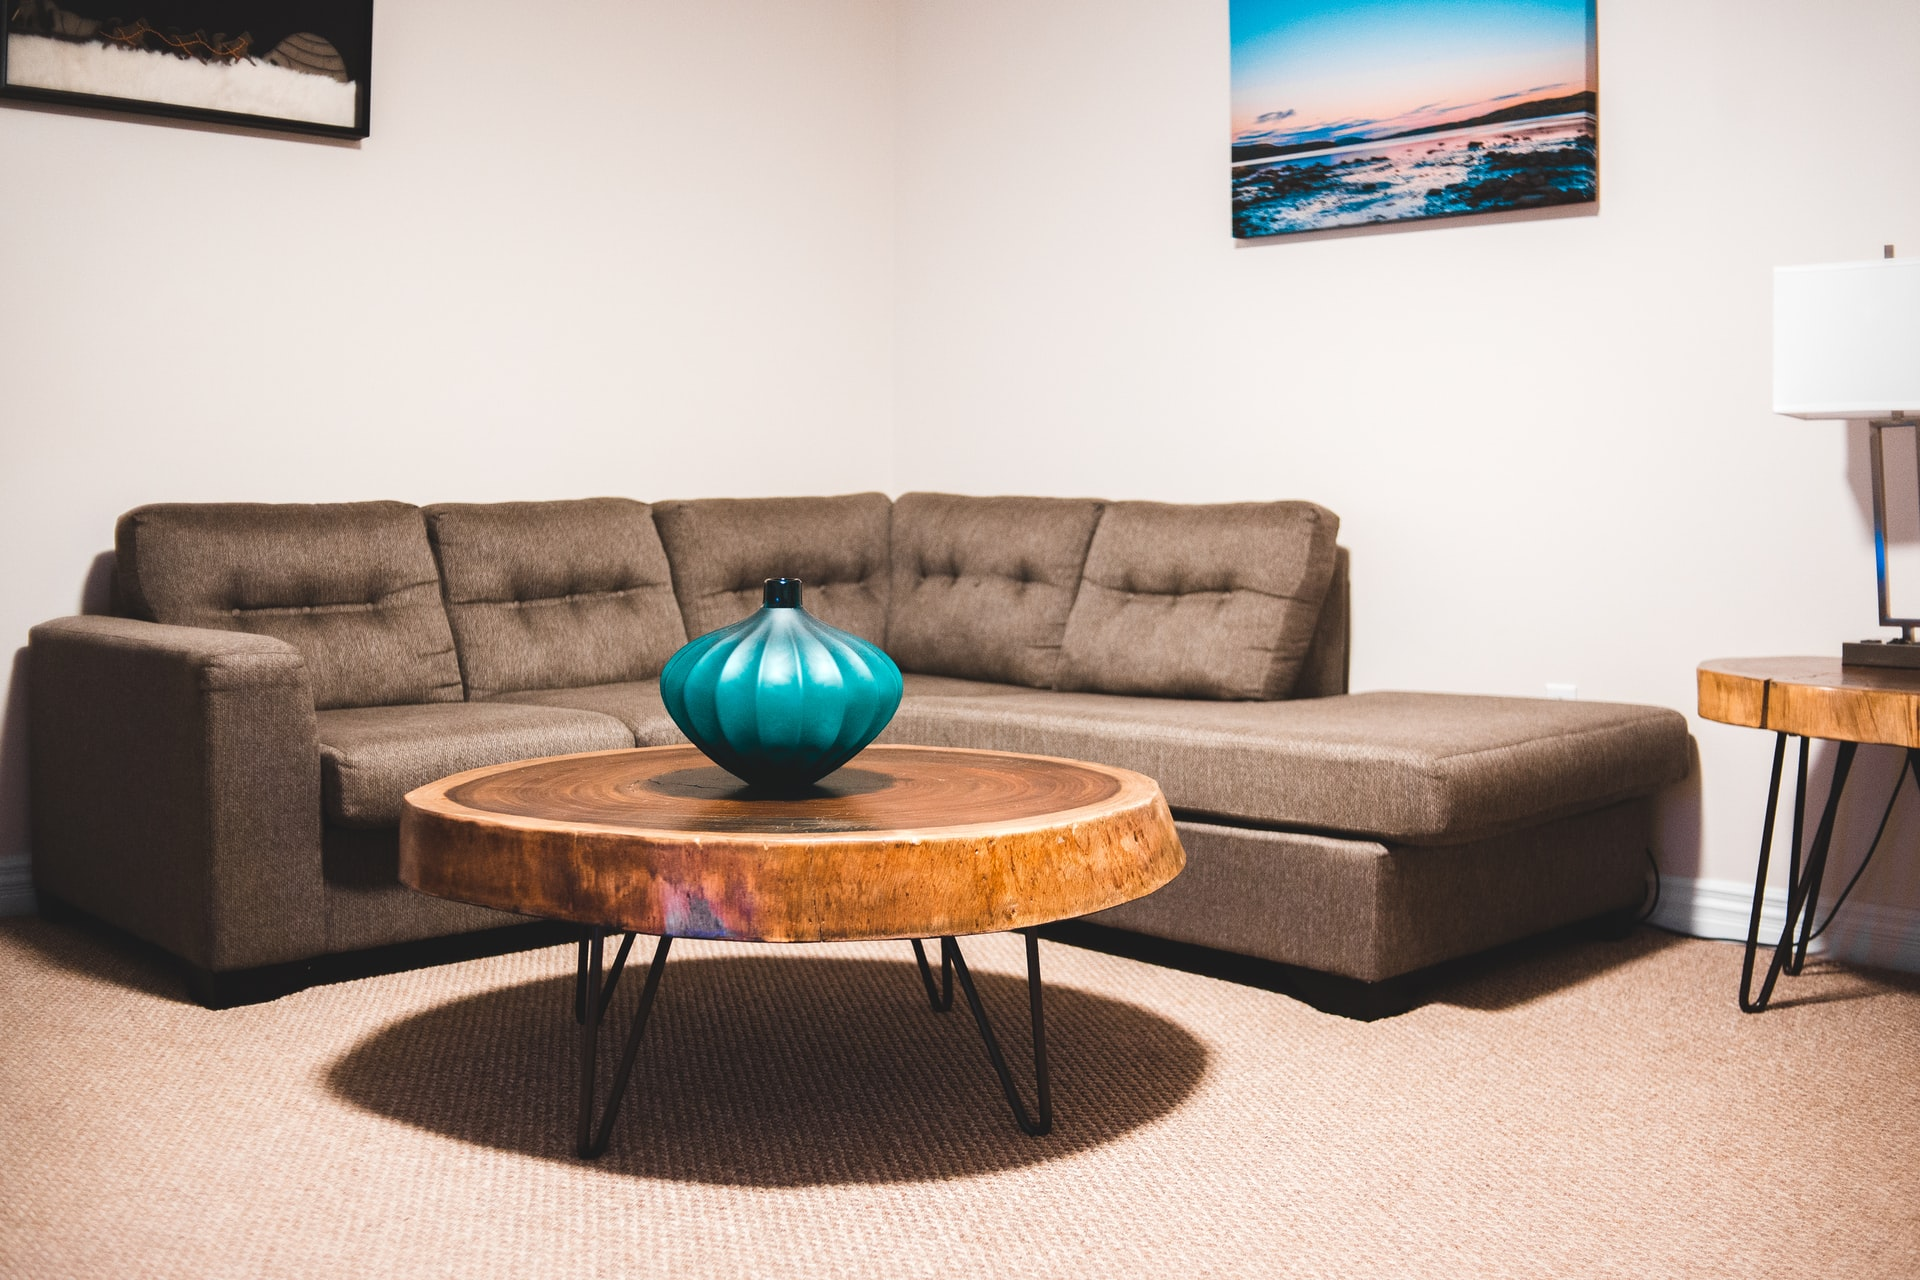 Modern room with a round coffee table